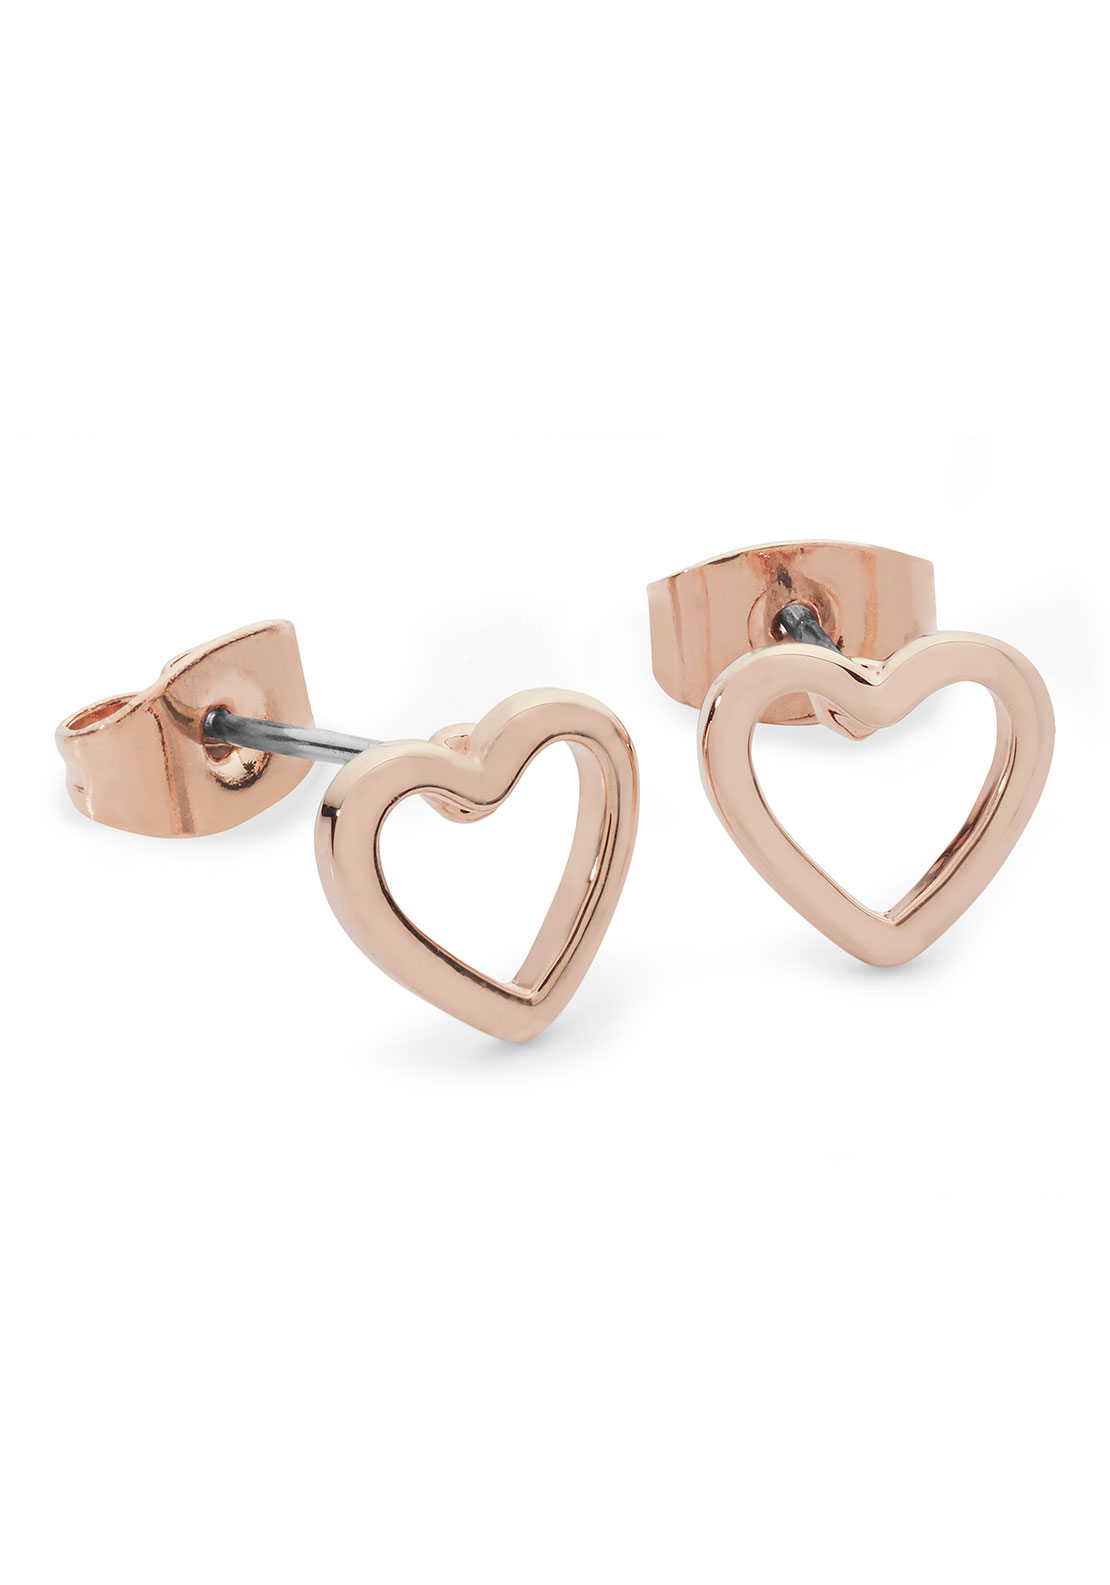 Tipperary Crystal Heart Earrings, Rose Gold